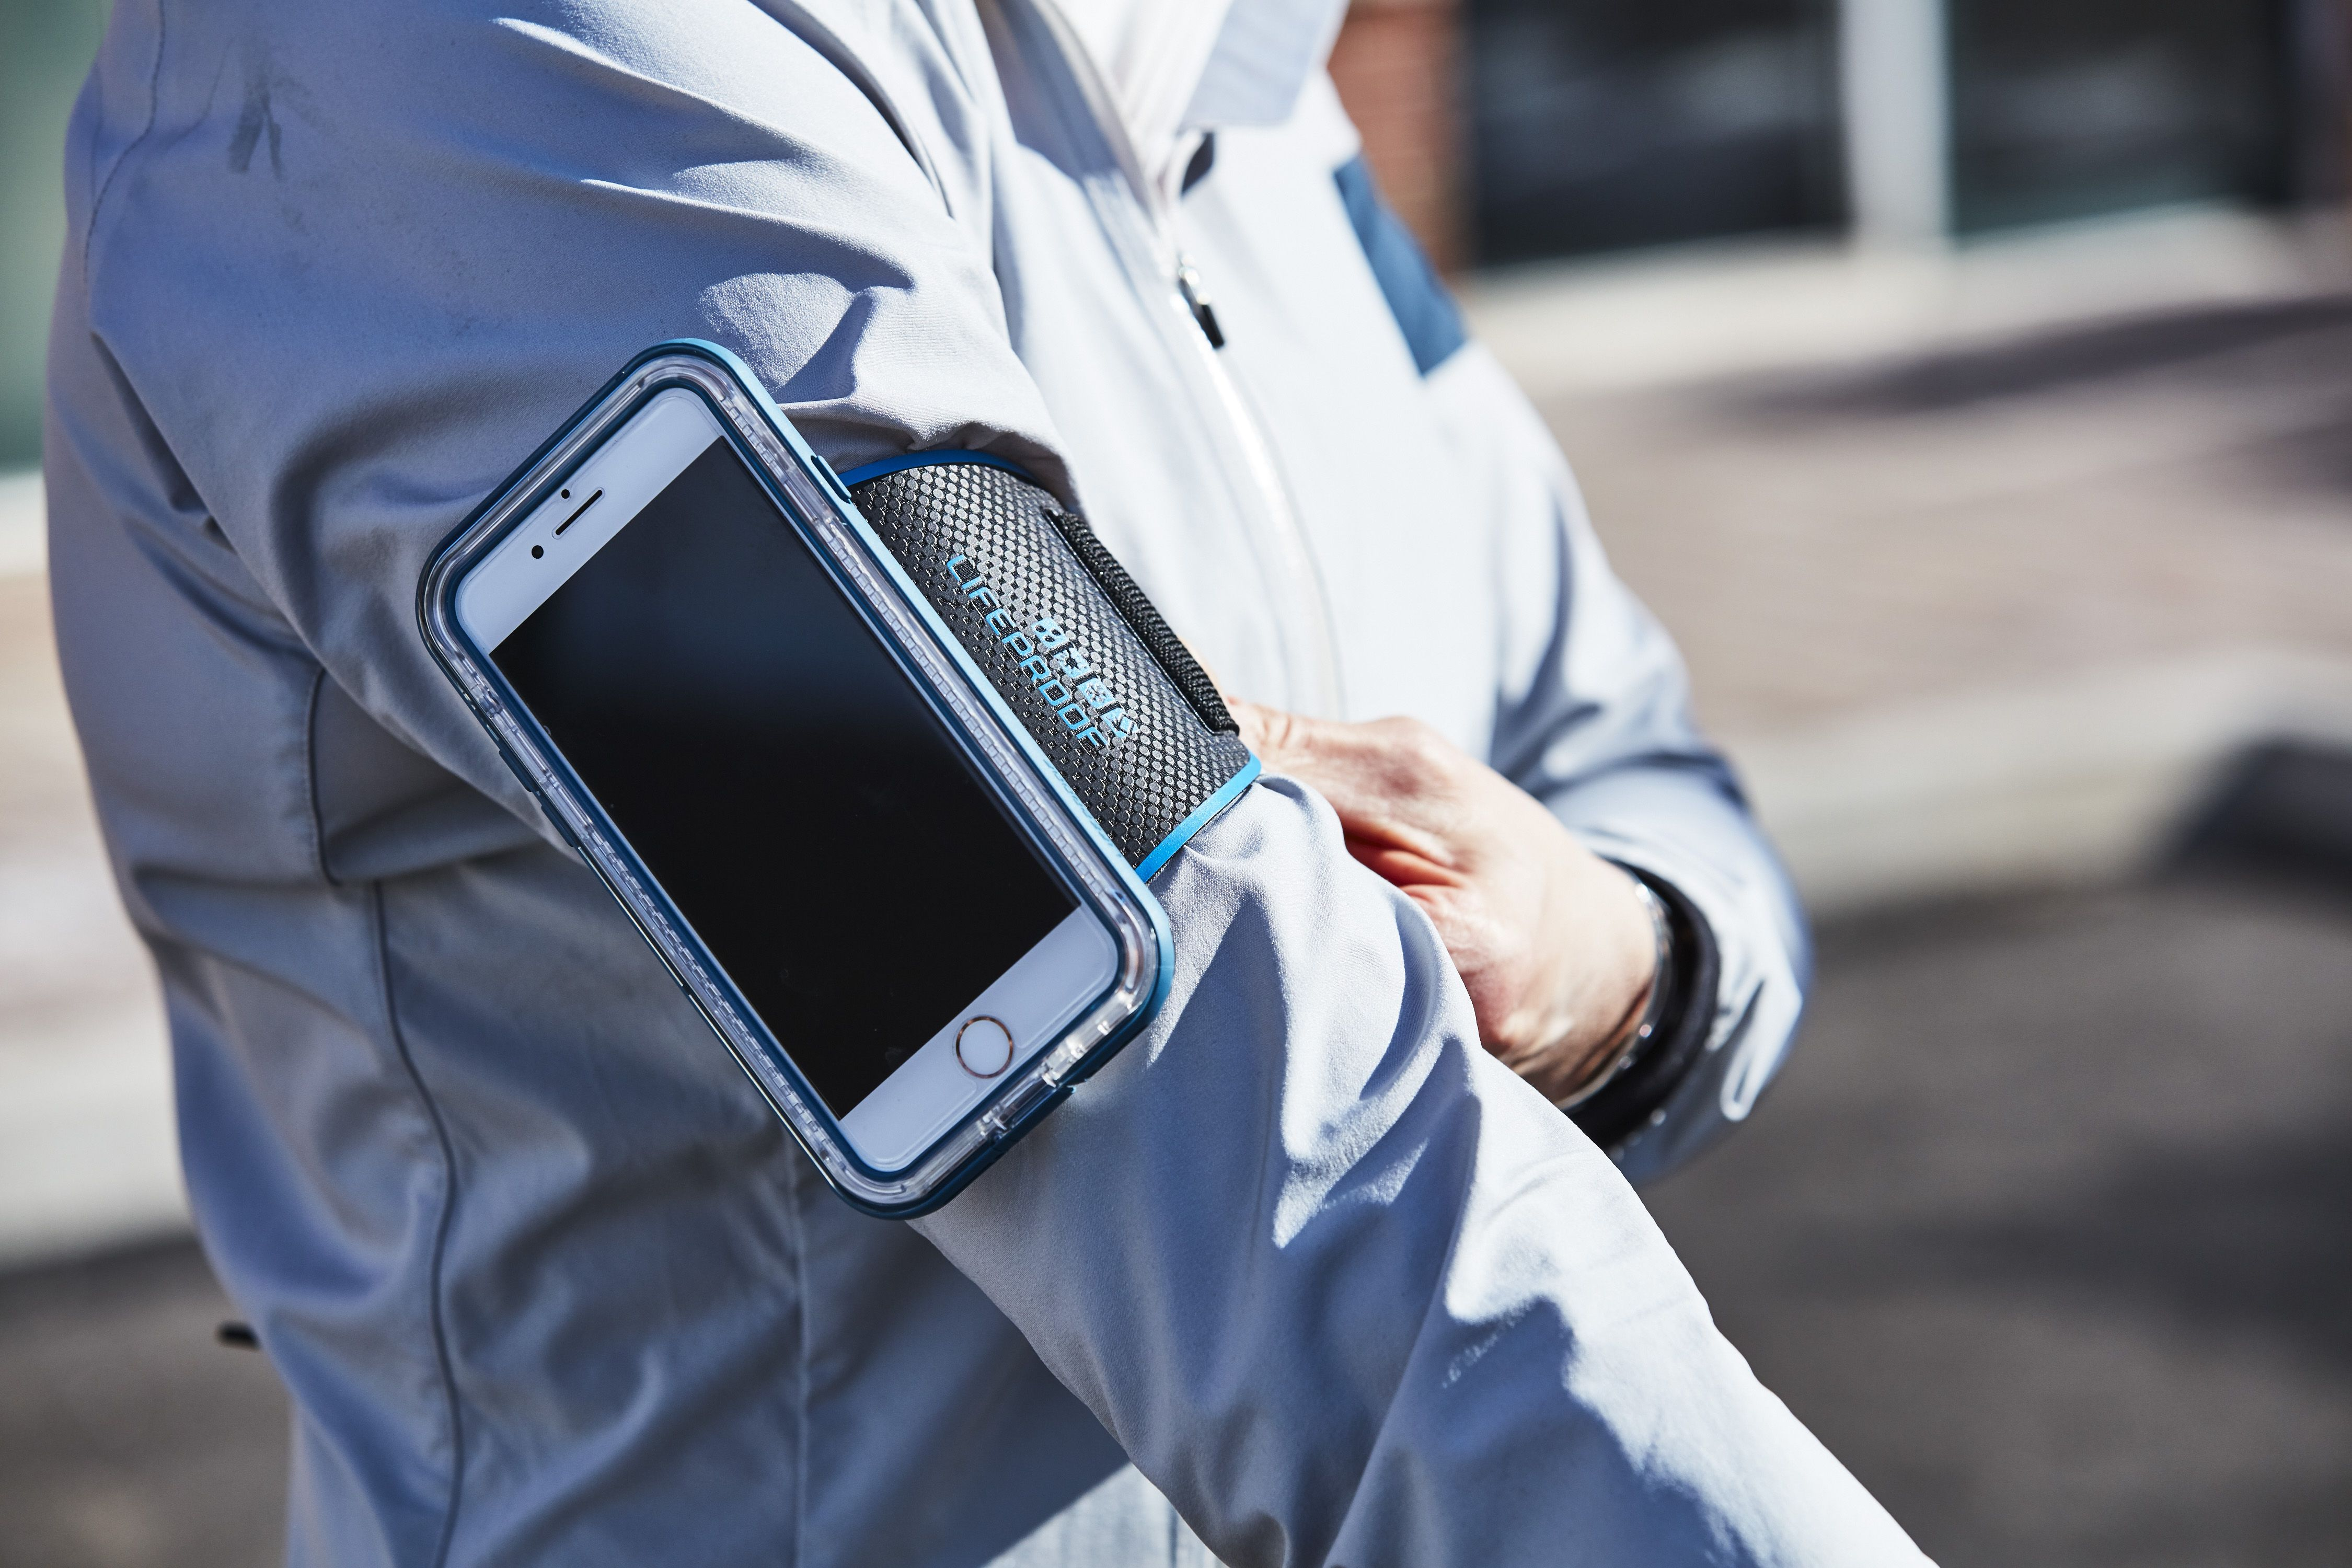 Armbands for Carrying Your Phone on a Run